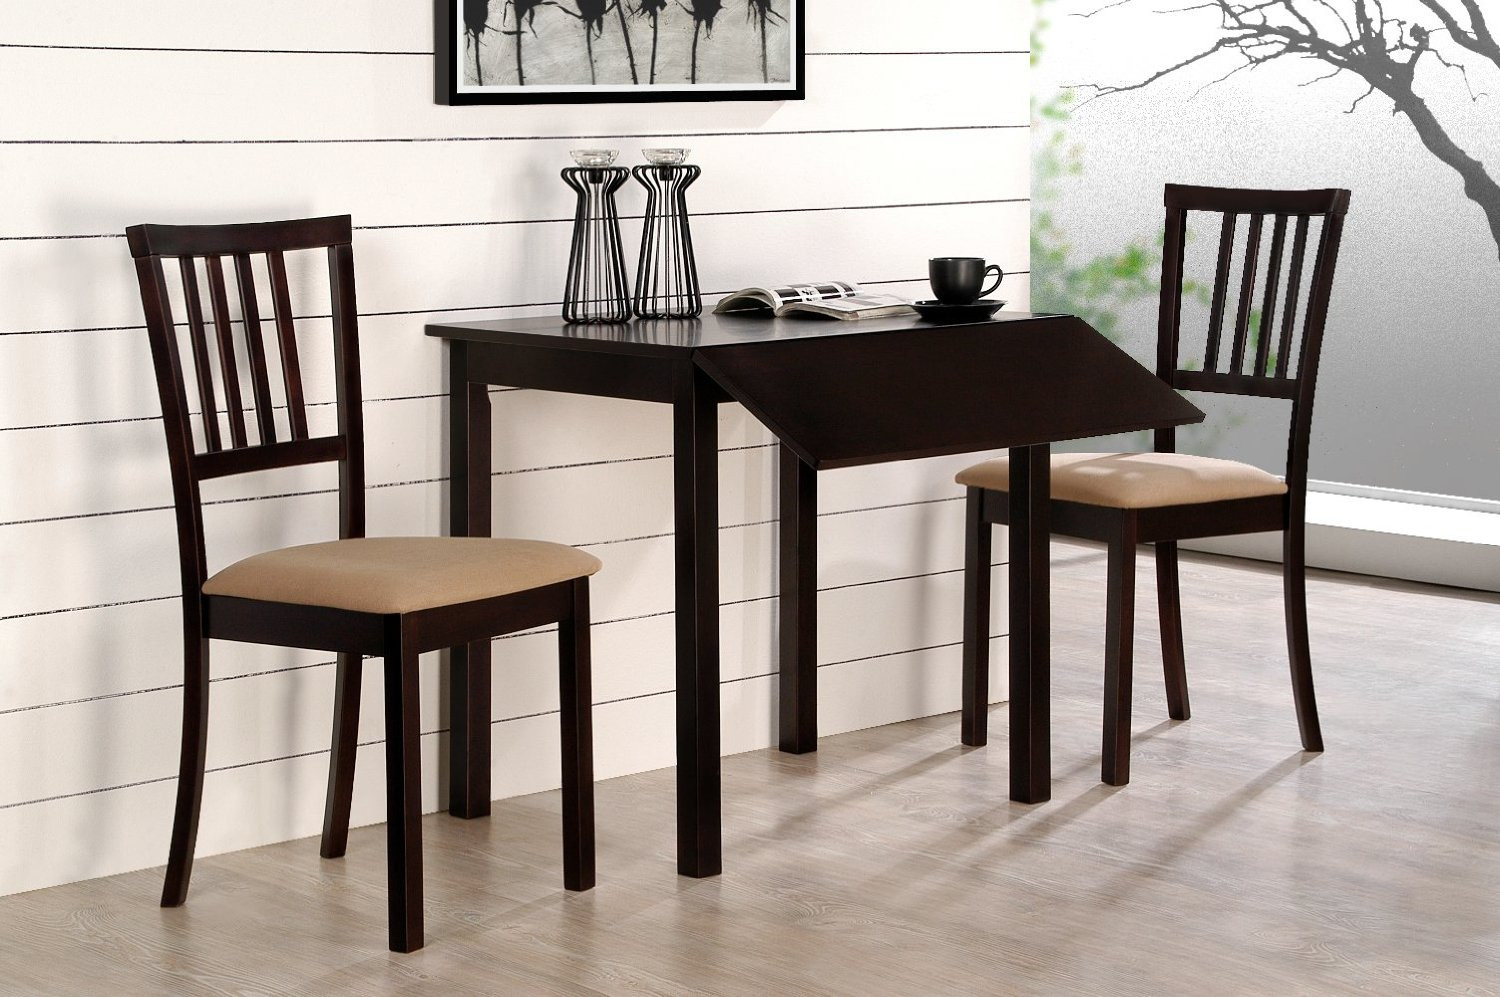 Best ideas about Small Dining Room Sets . Save or Pin Small Room Design simple design small dining room sets Now.